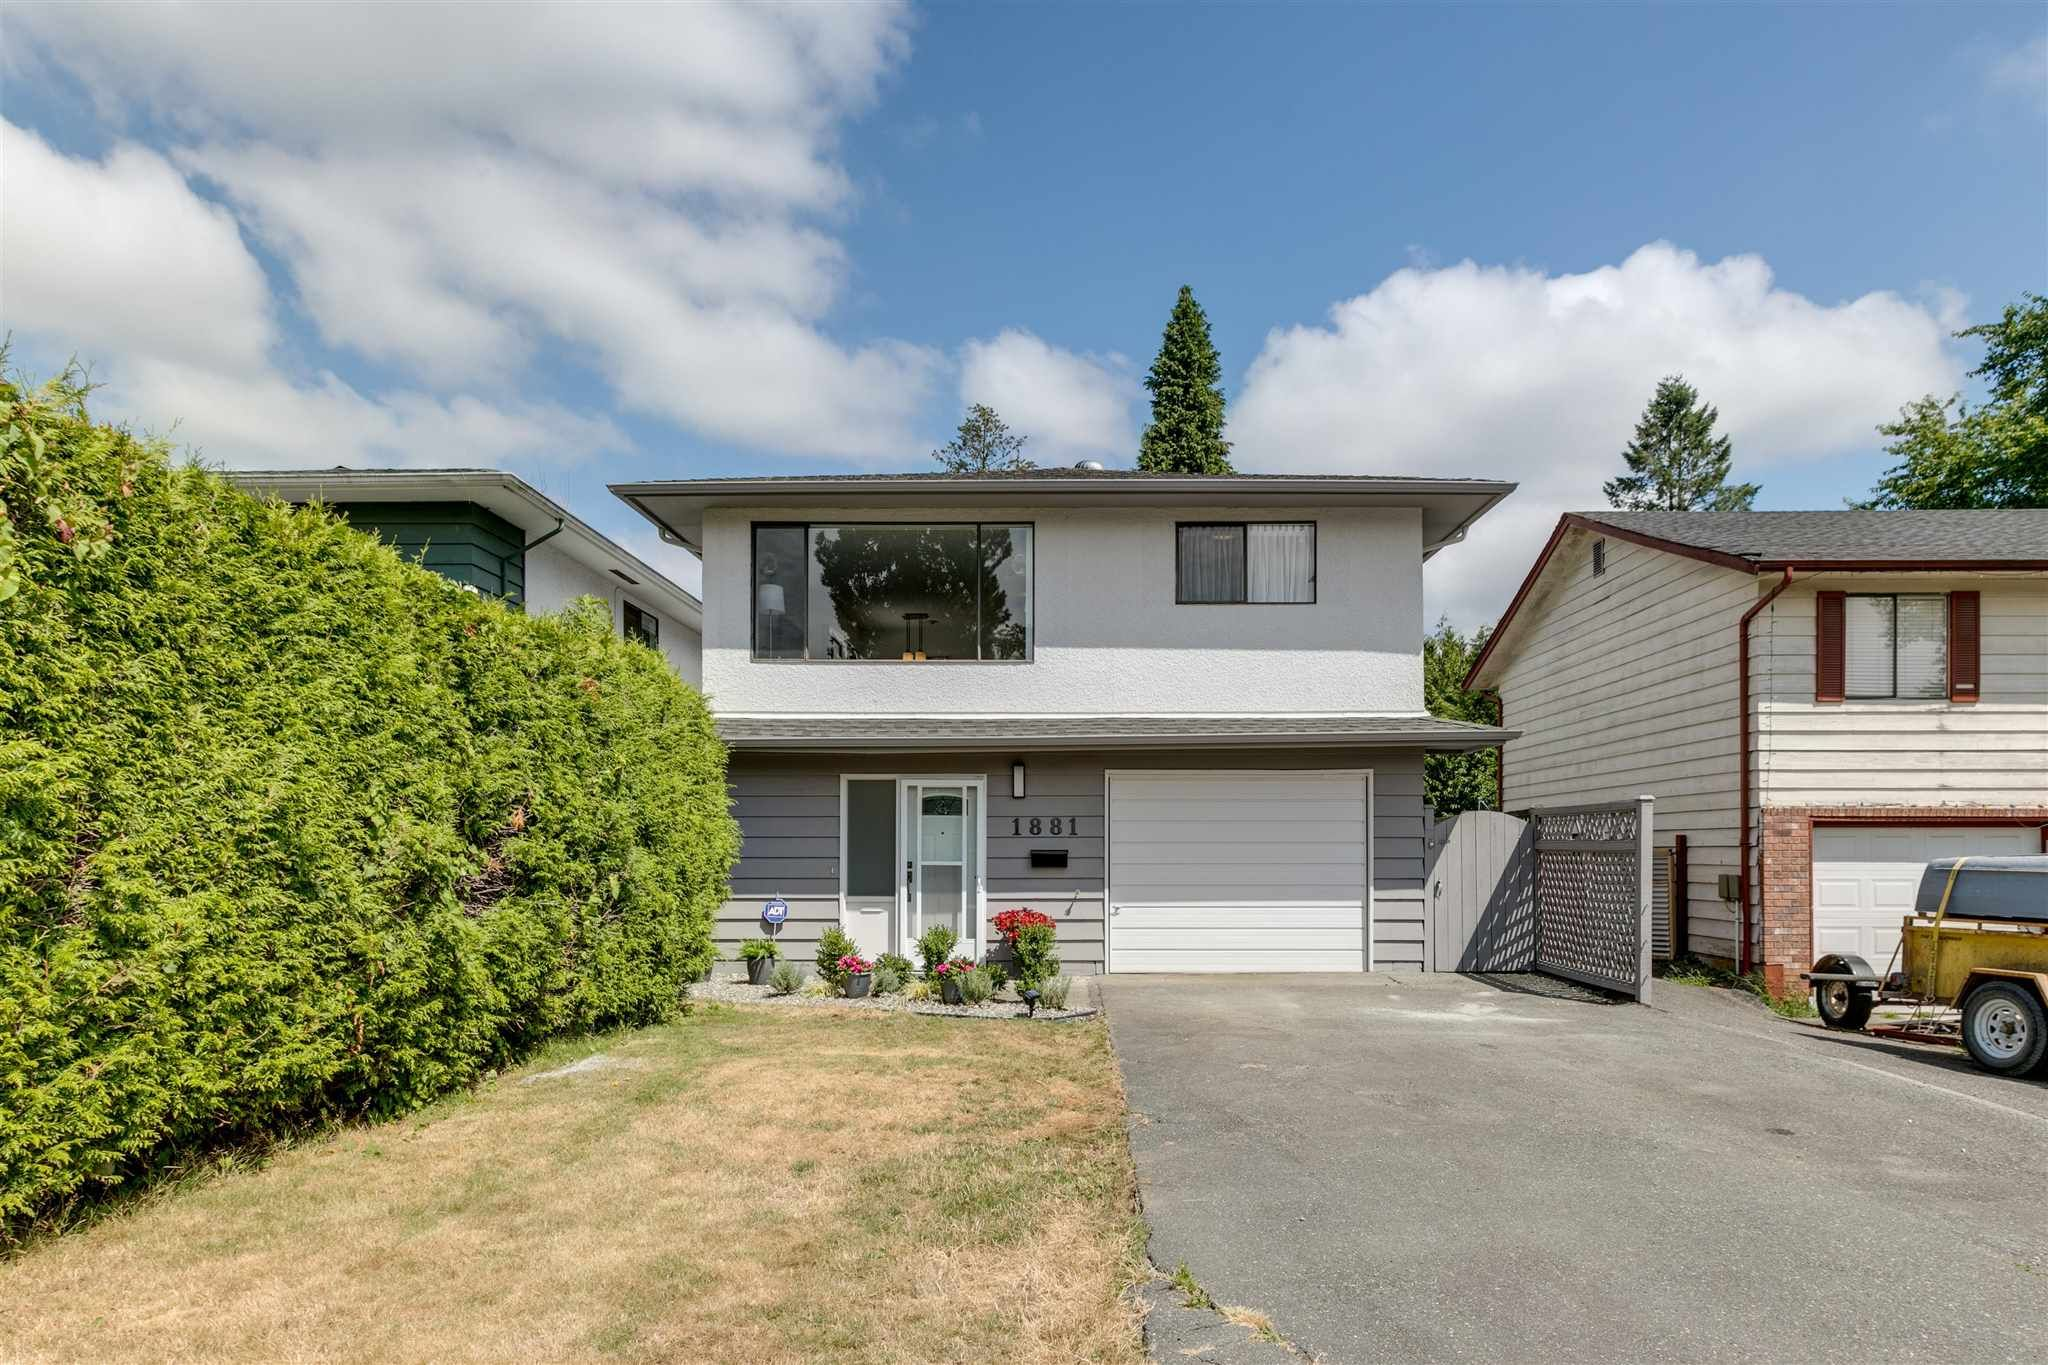 Main Photo: 1881 SUFFOLK AVENUE in Port Coquitlam: Glenwood PQ House for sale : MLS®# R2602990